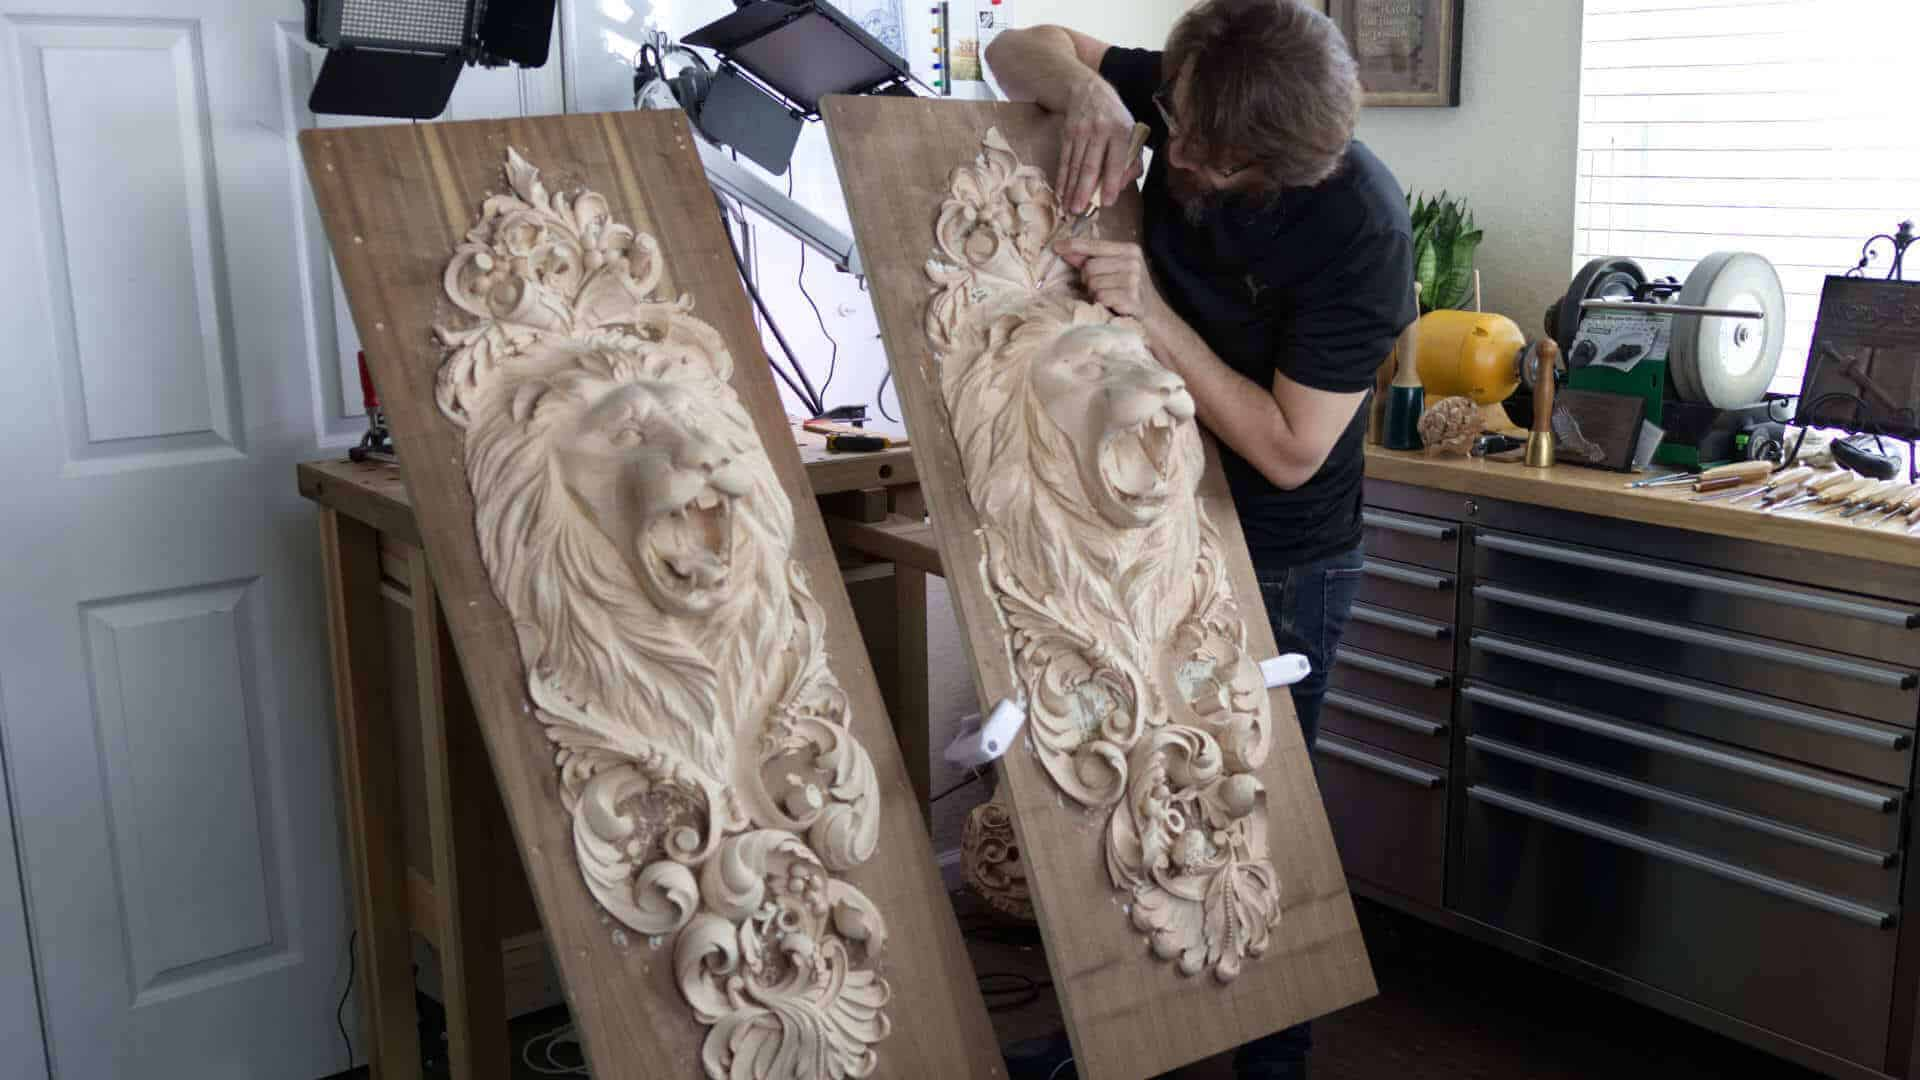 What Is The Best Wood For Wood Carving? woodcarving school, school of woodcarving, wood carving lessons, woodcarving courses